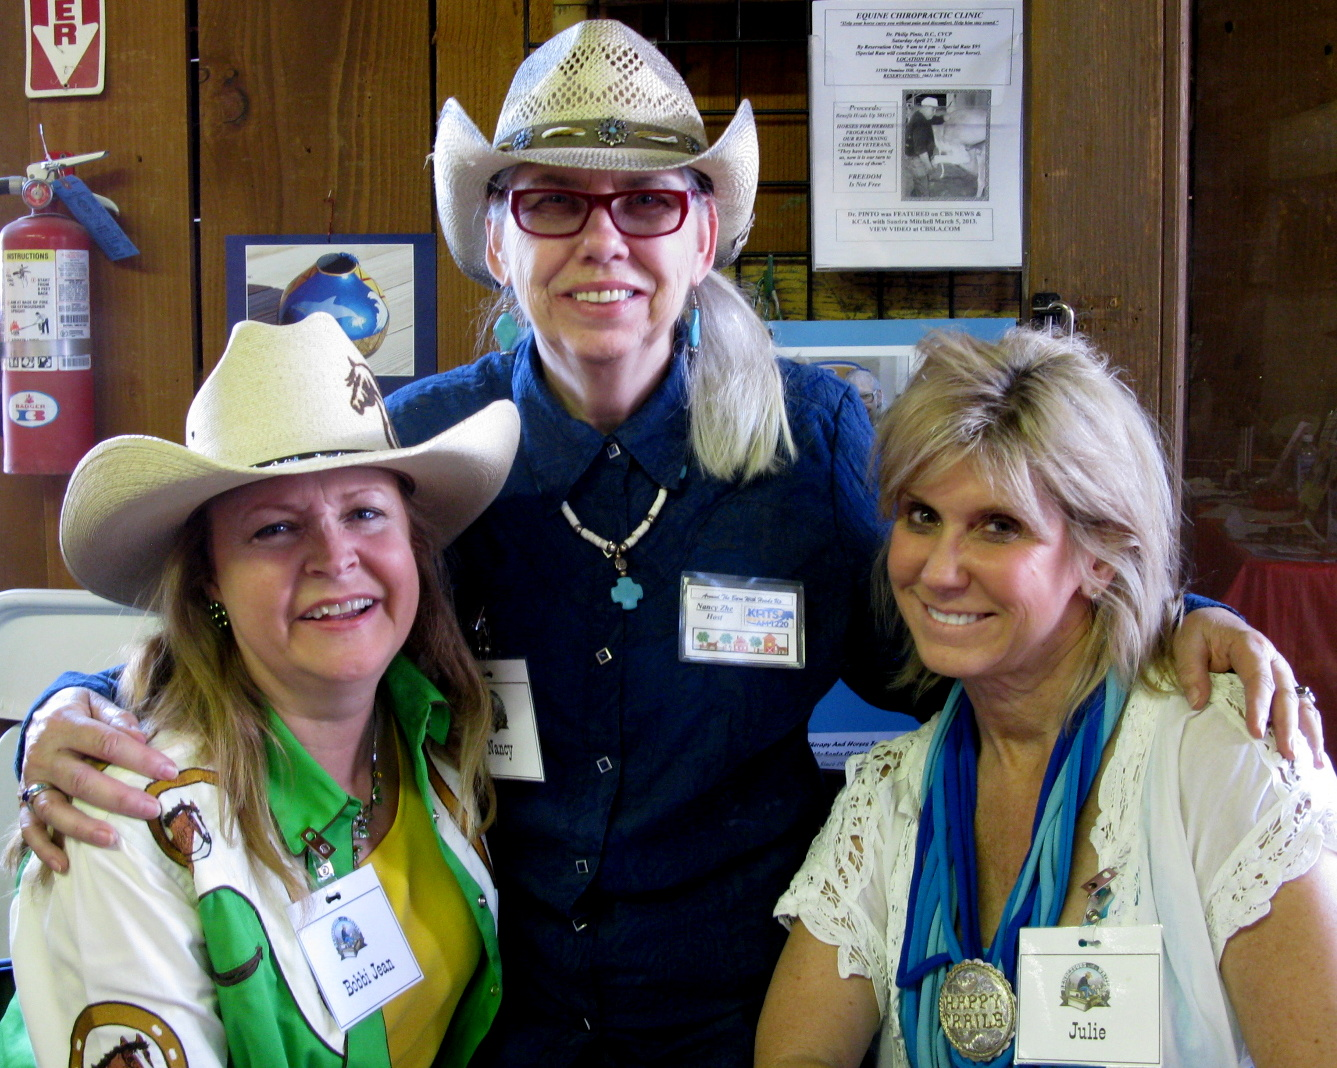 KHTS Radio Around the Barn Hosts Nancy Zhee, Bobbi Jean Bell, Julie Fox Pomilia